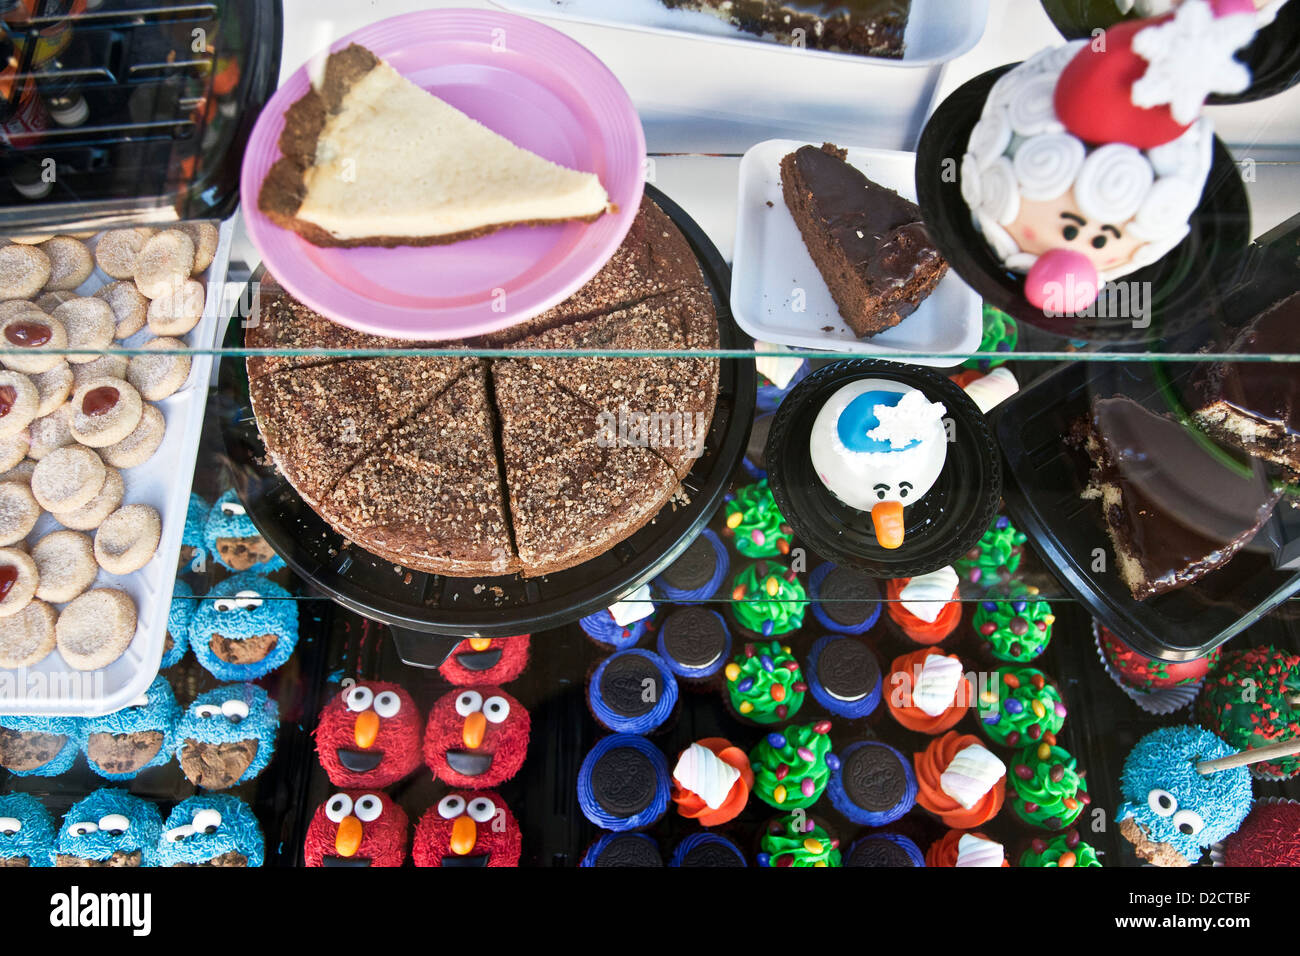 display of delicious baked treats pastries colorful novelty cookies including red Elmo & varieties in glass - Stock Image